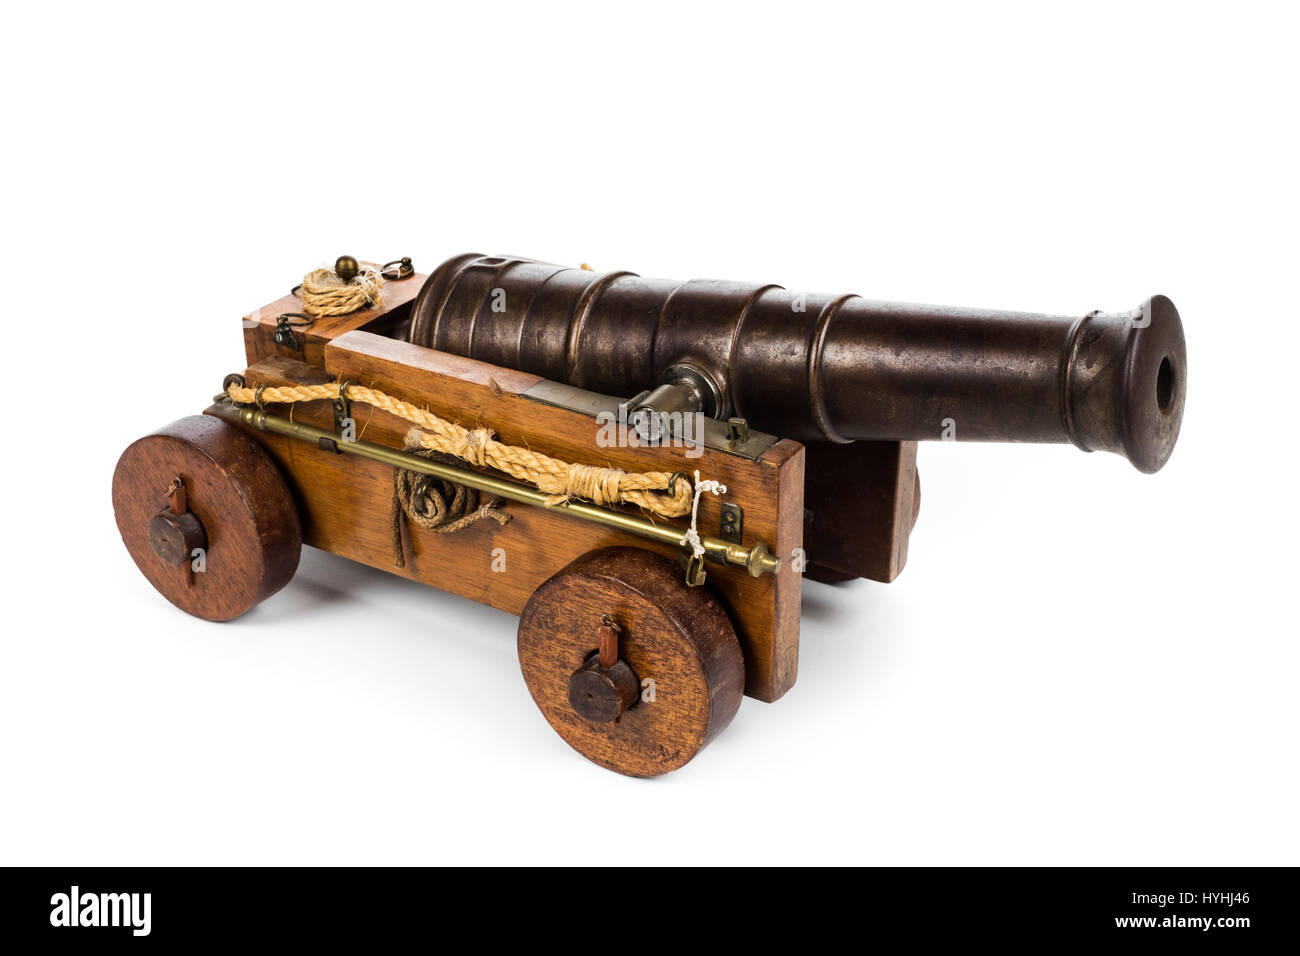 British naval signal cannon with 40cm iron barrel, flared muzzle and trunnion on a mahogany four-wheel carriage. - Stock Image